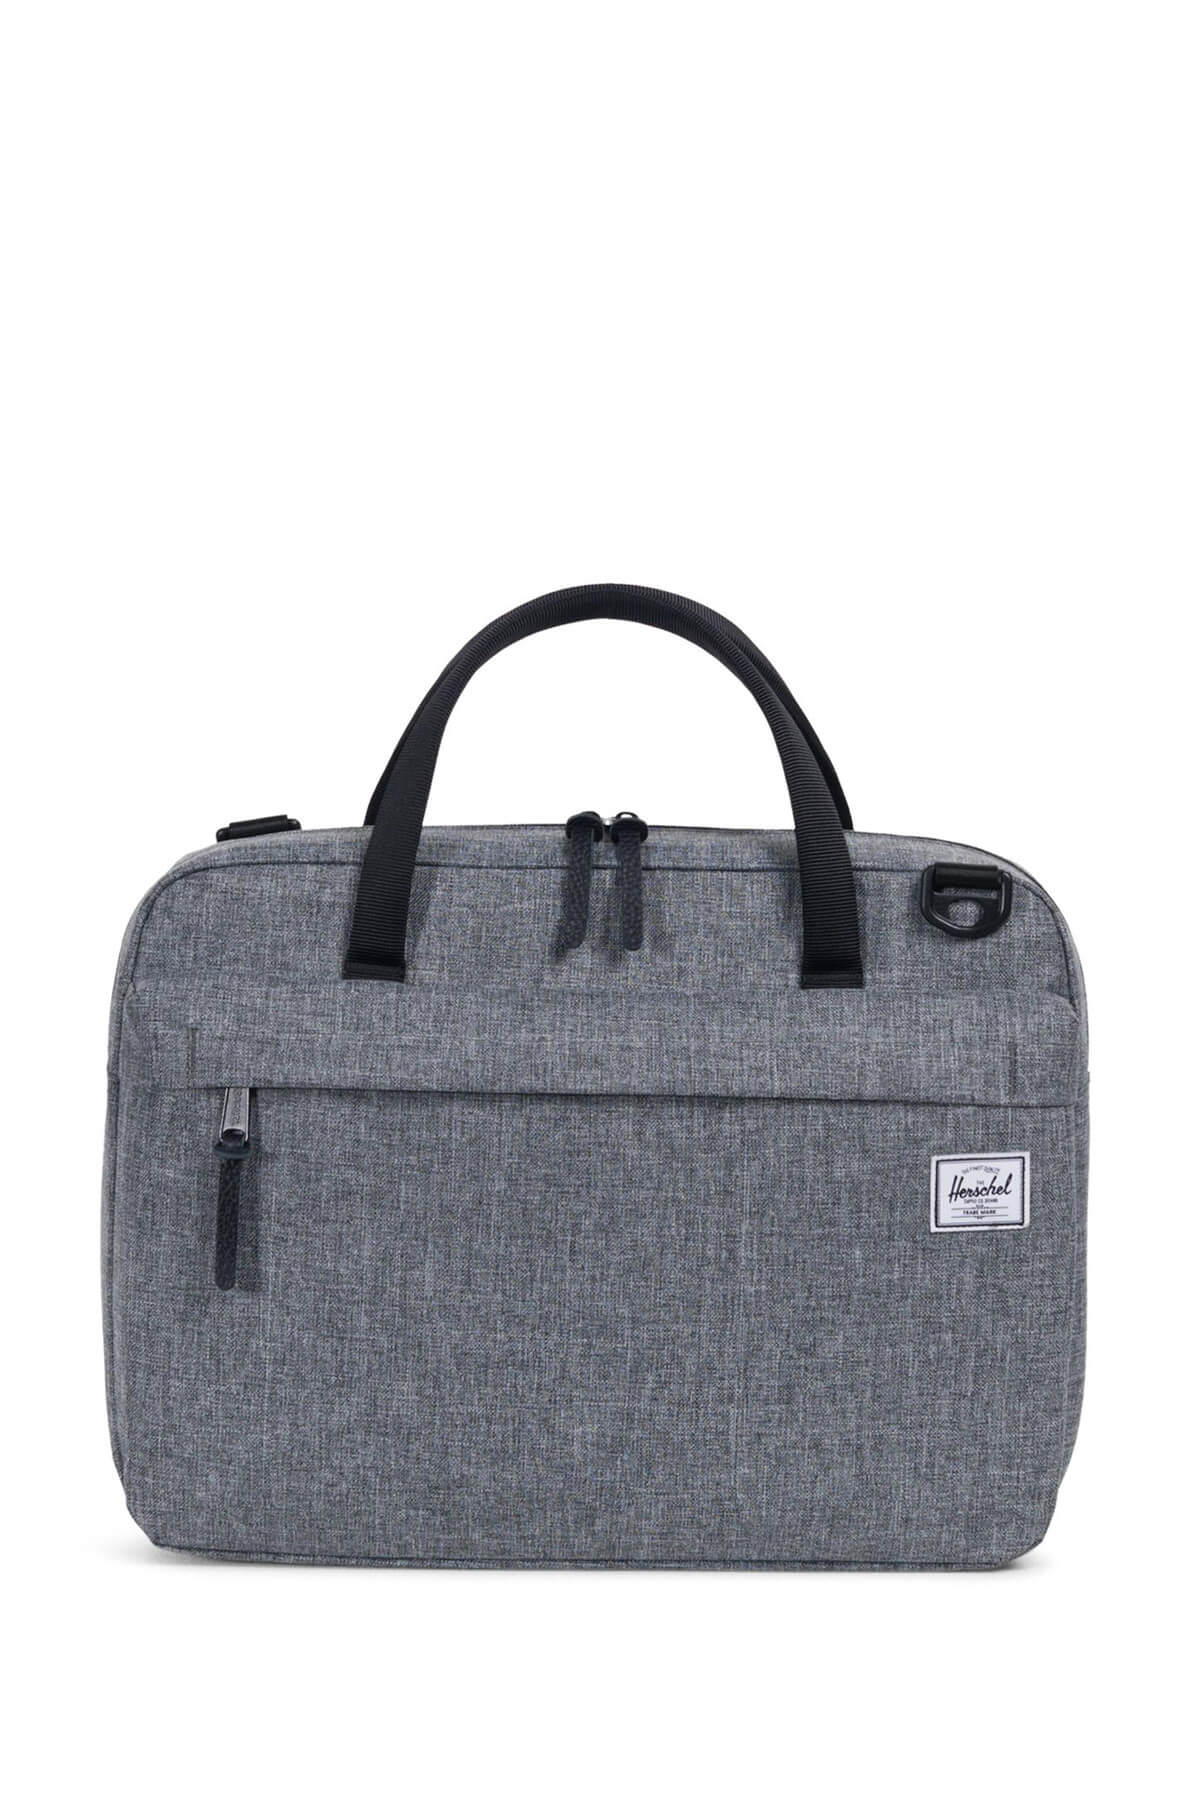 Herschel Supply Co. Unisex Laptop Çantası – Gibson 10387-00919-os